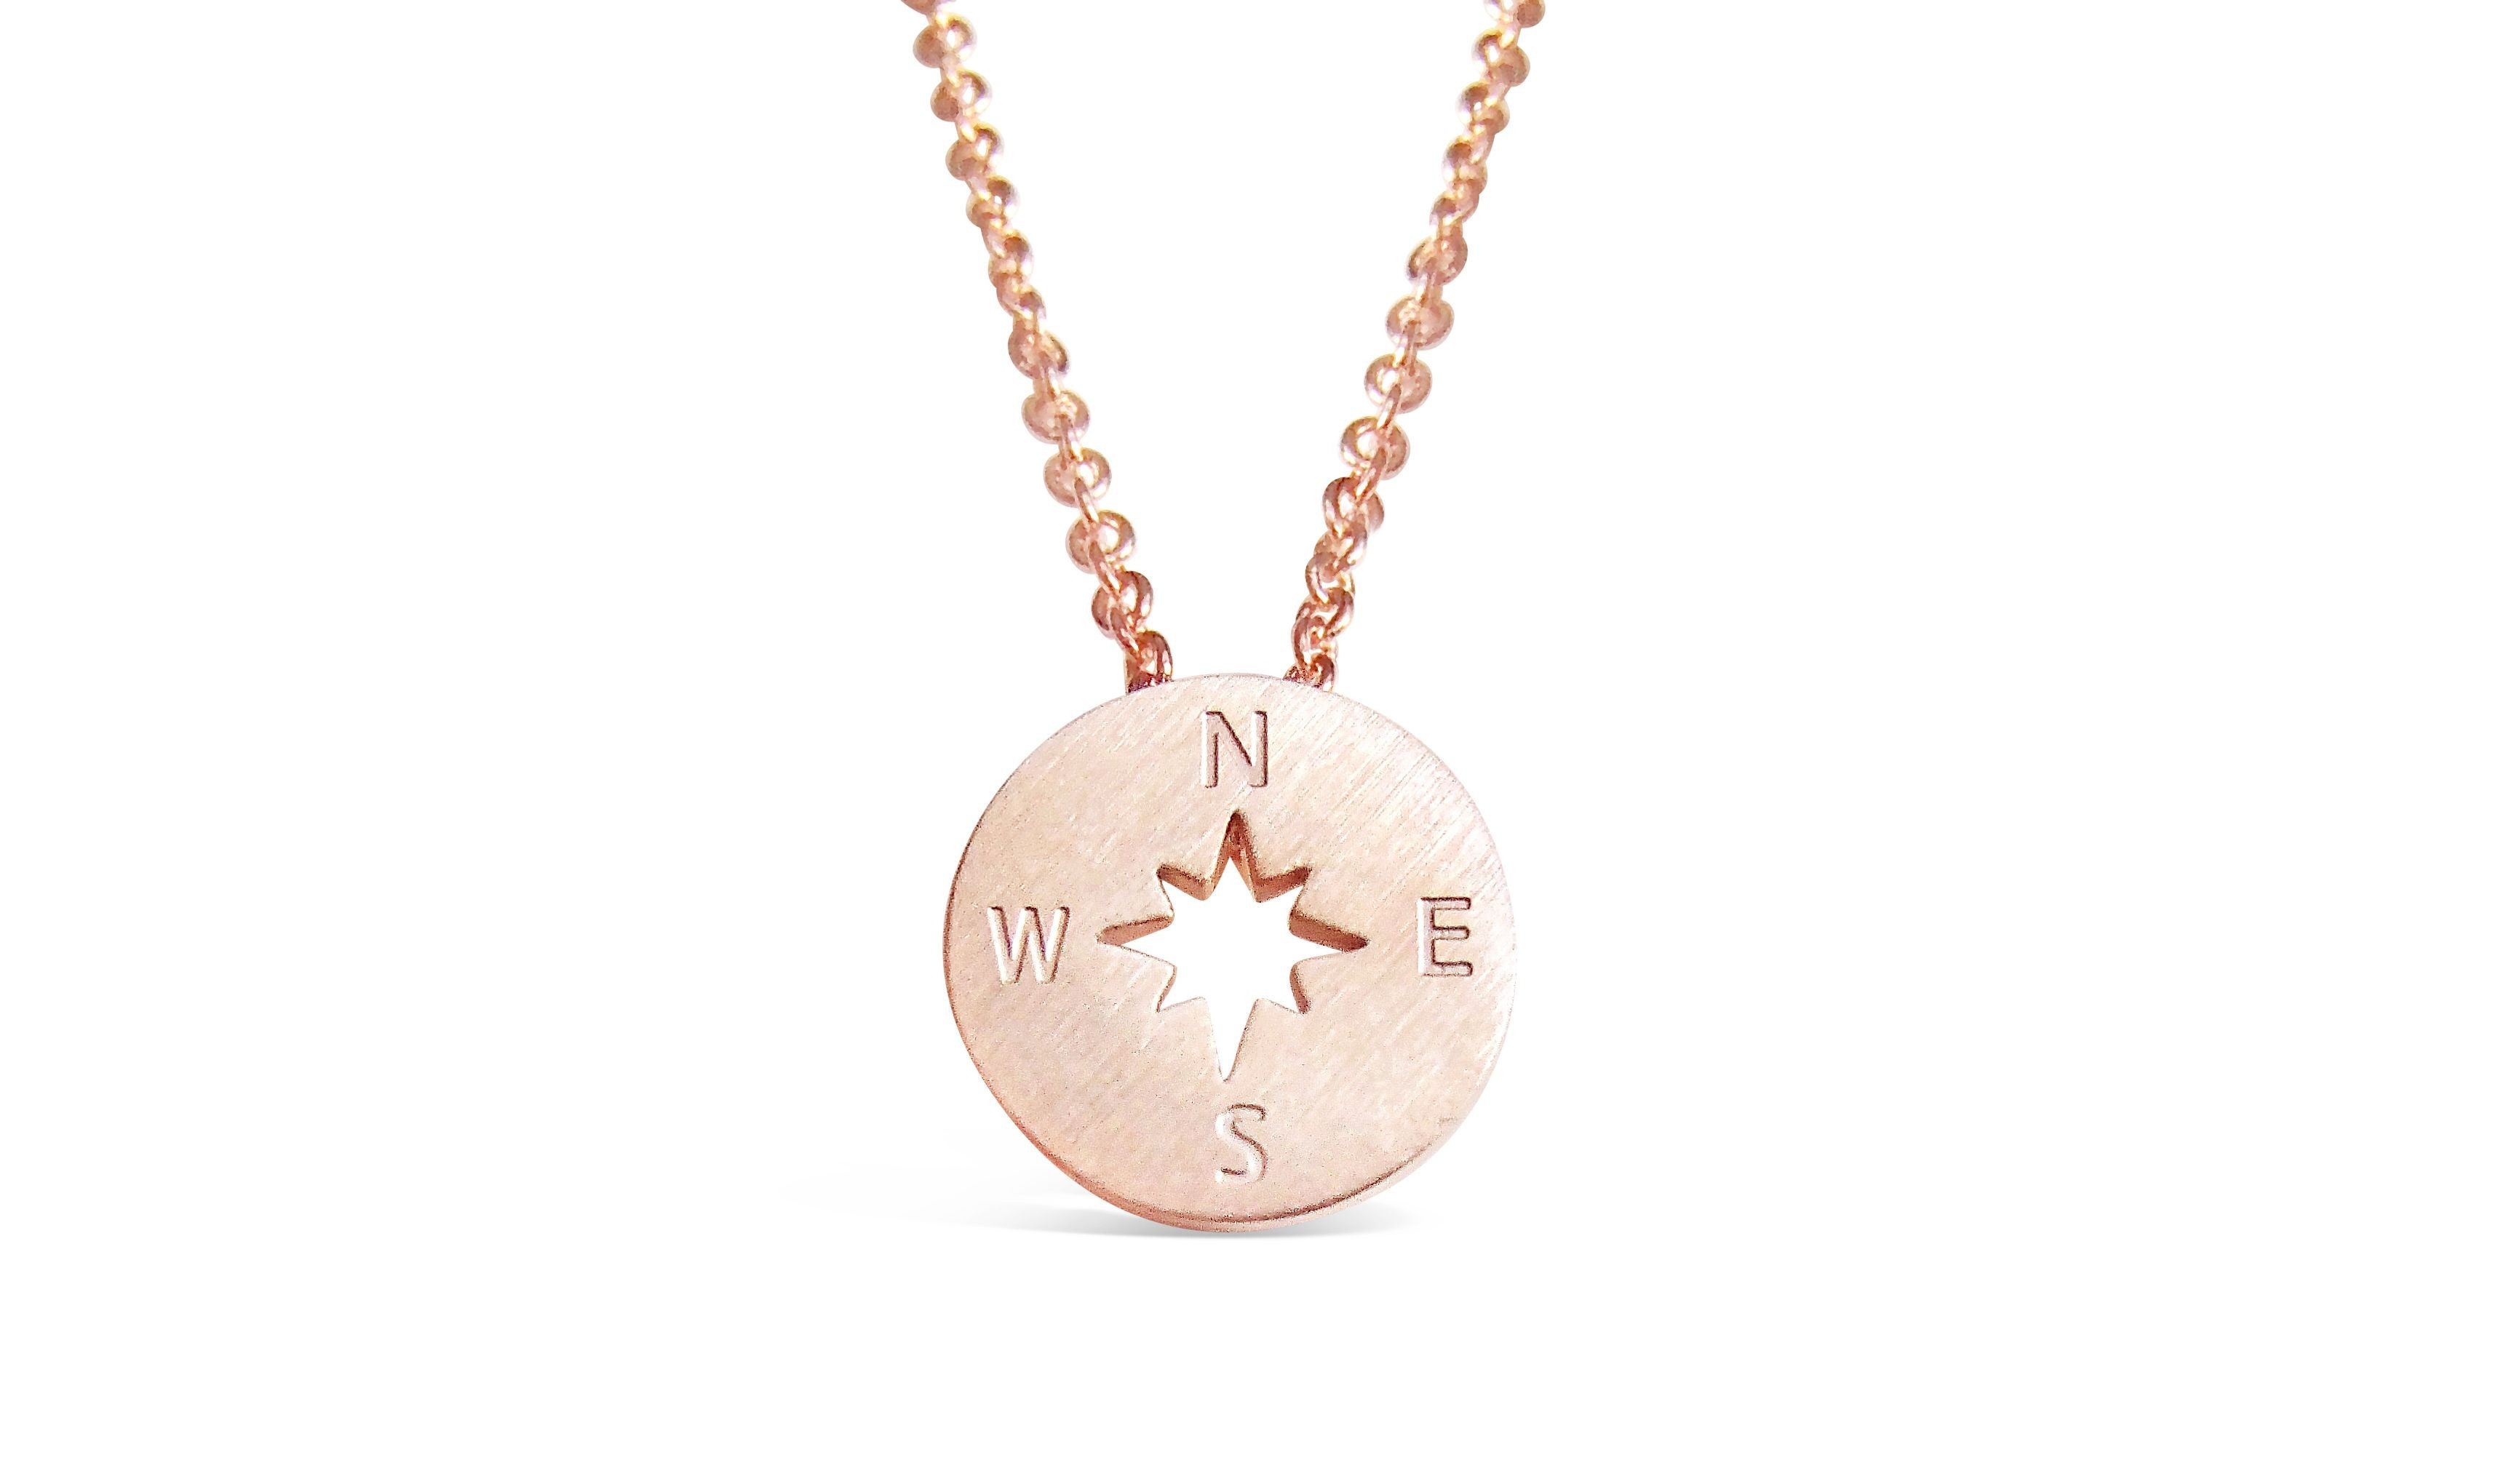 compass products eden zoe img necklace